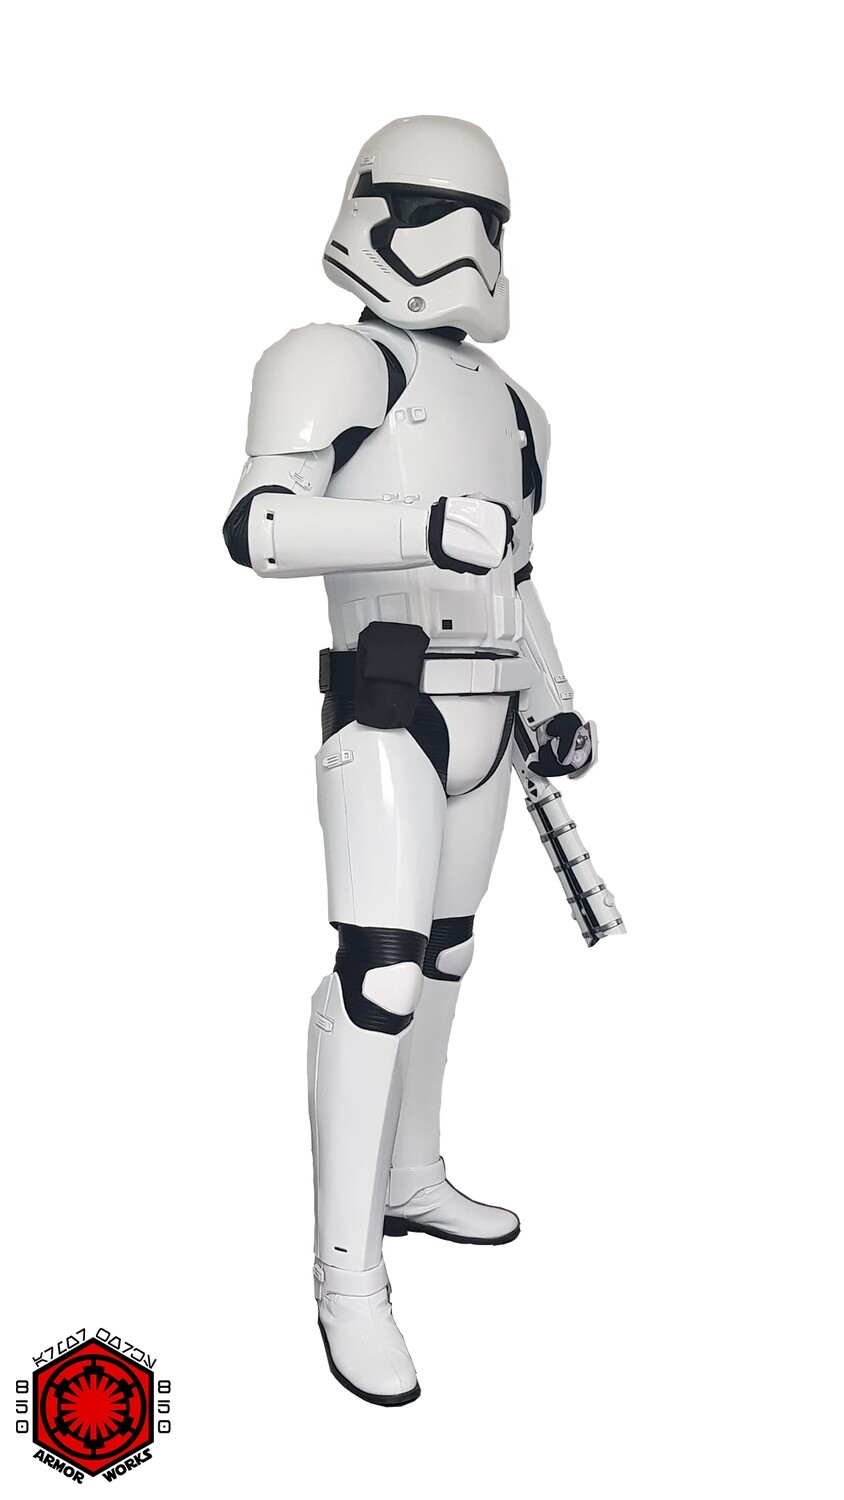 First Order Stormtrooper ABS Armor costume kit